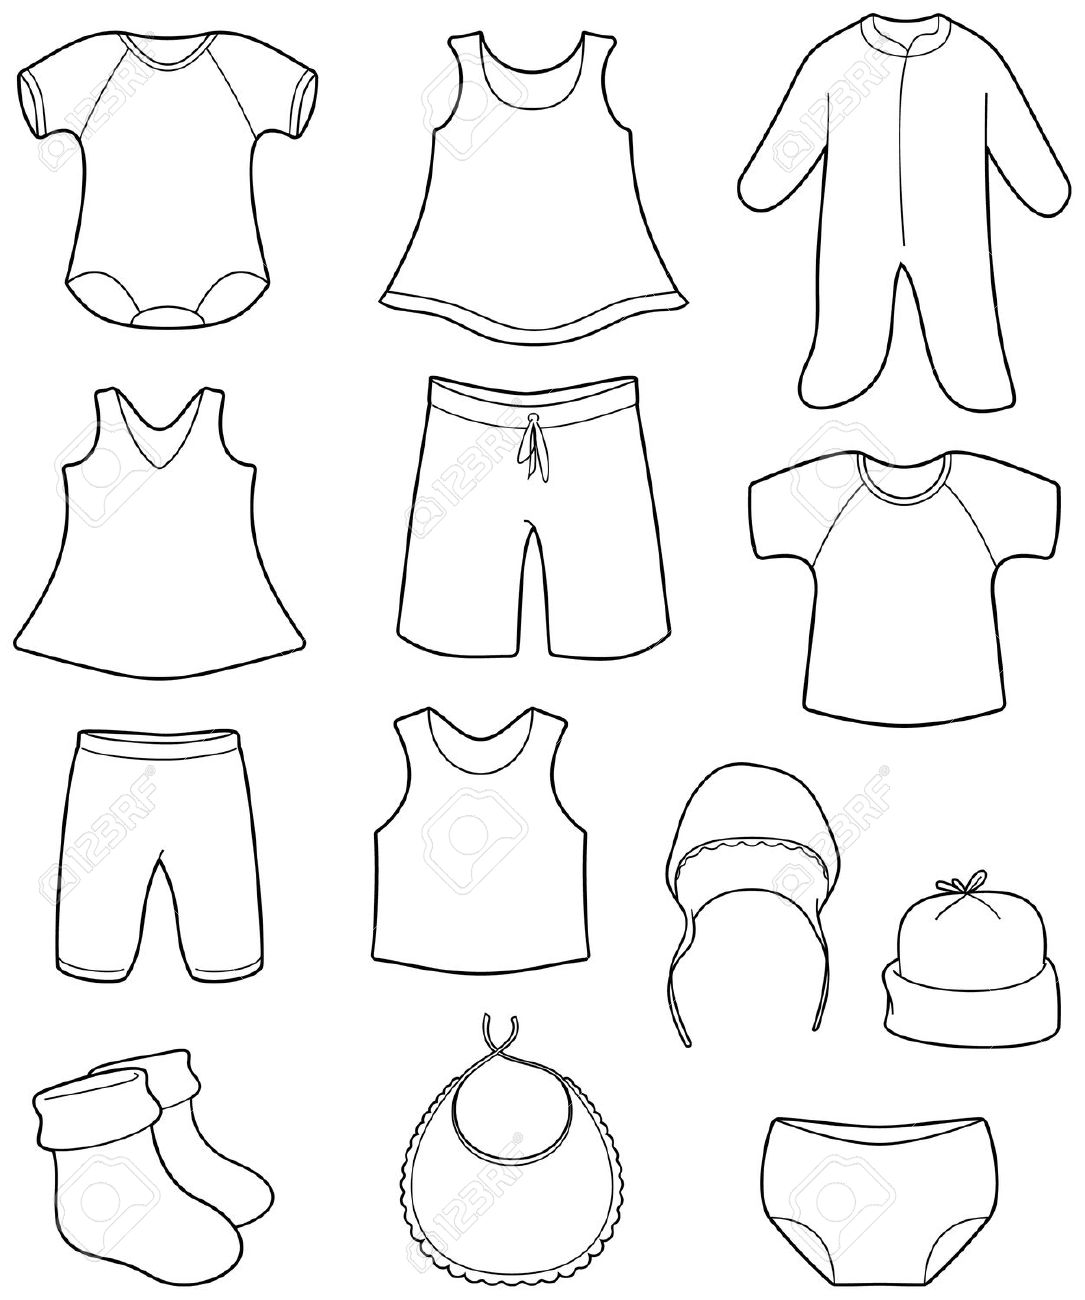 1085x1300 Baby Clothes Clipart Black And White